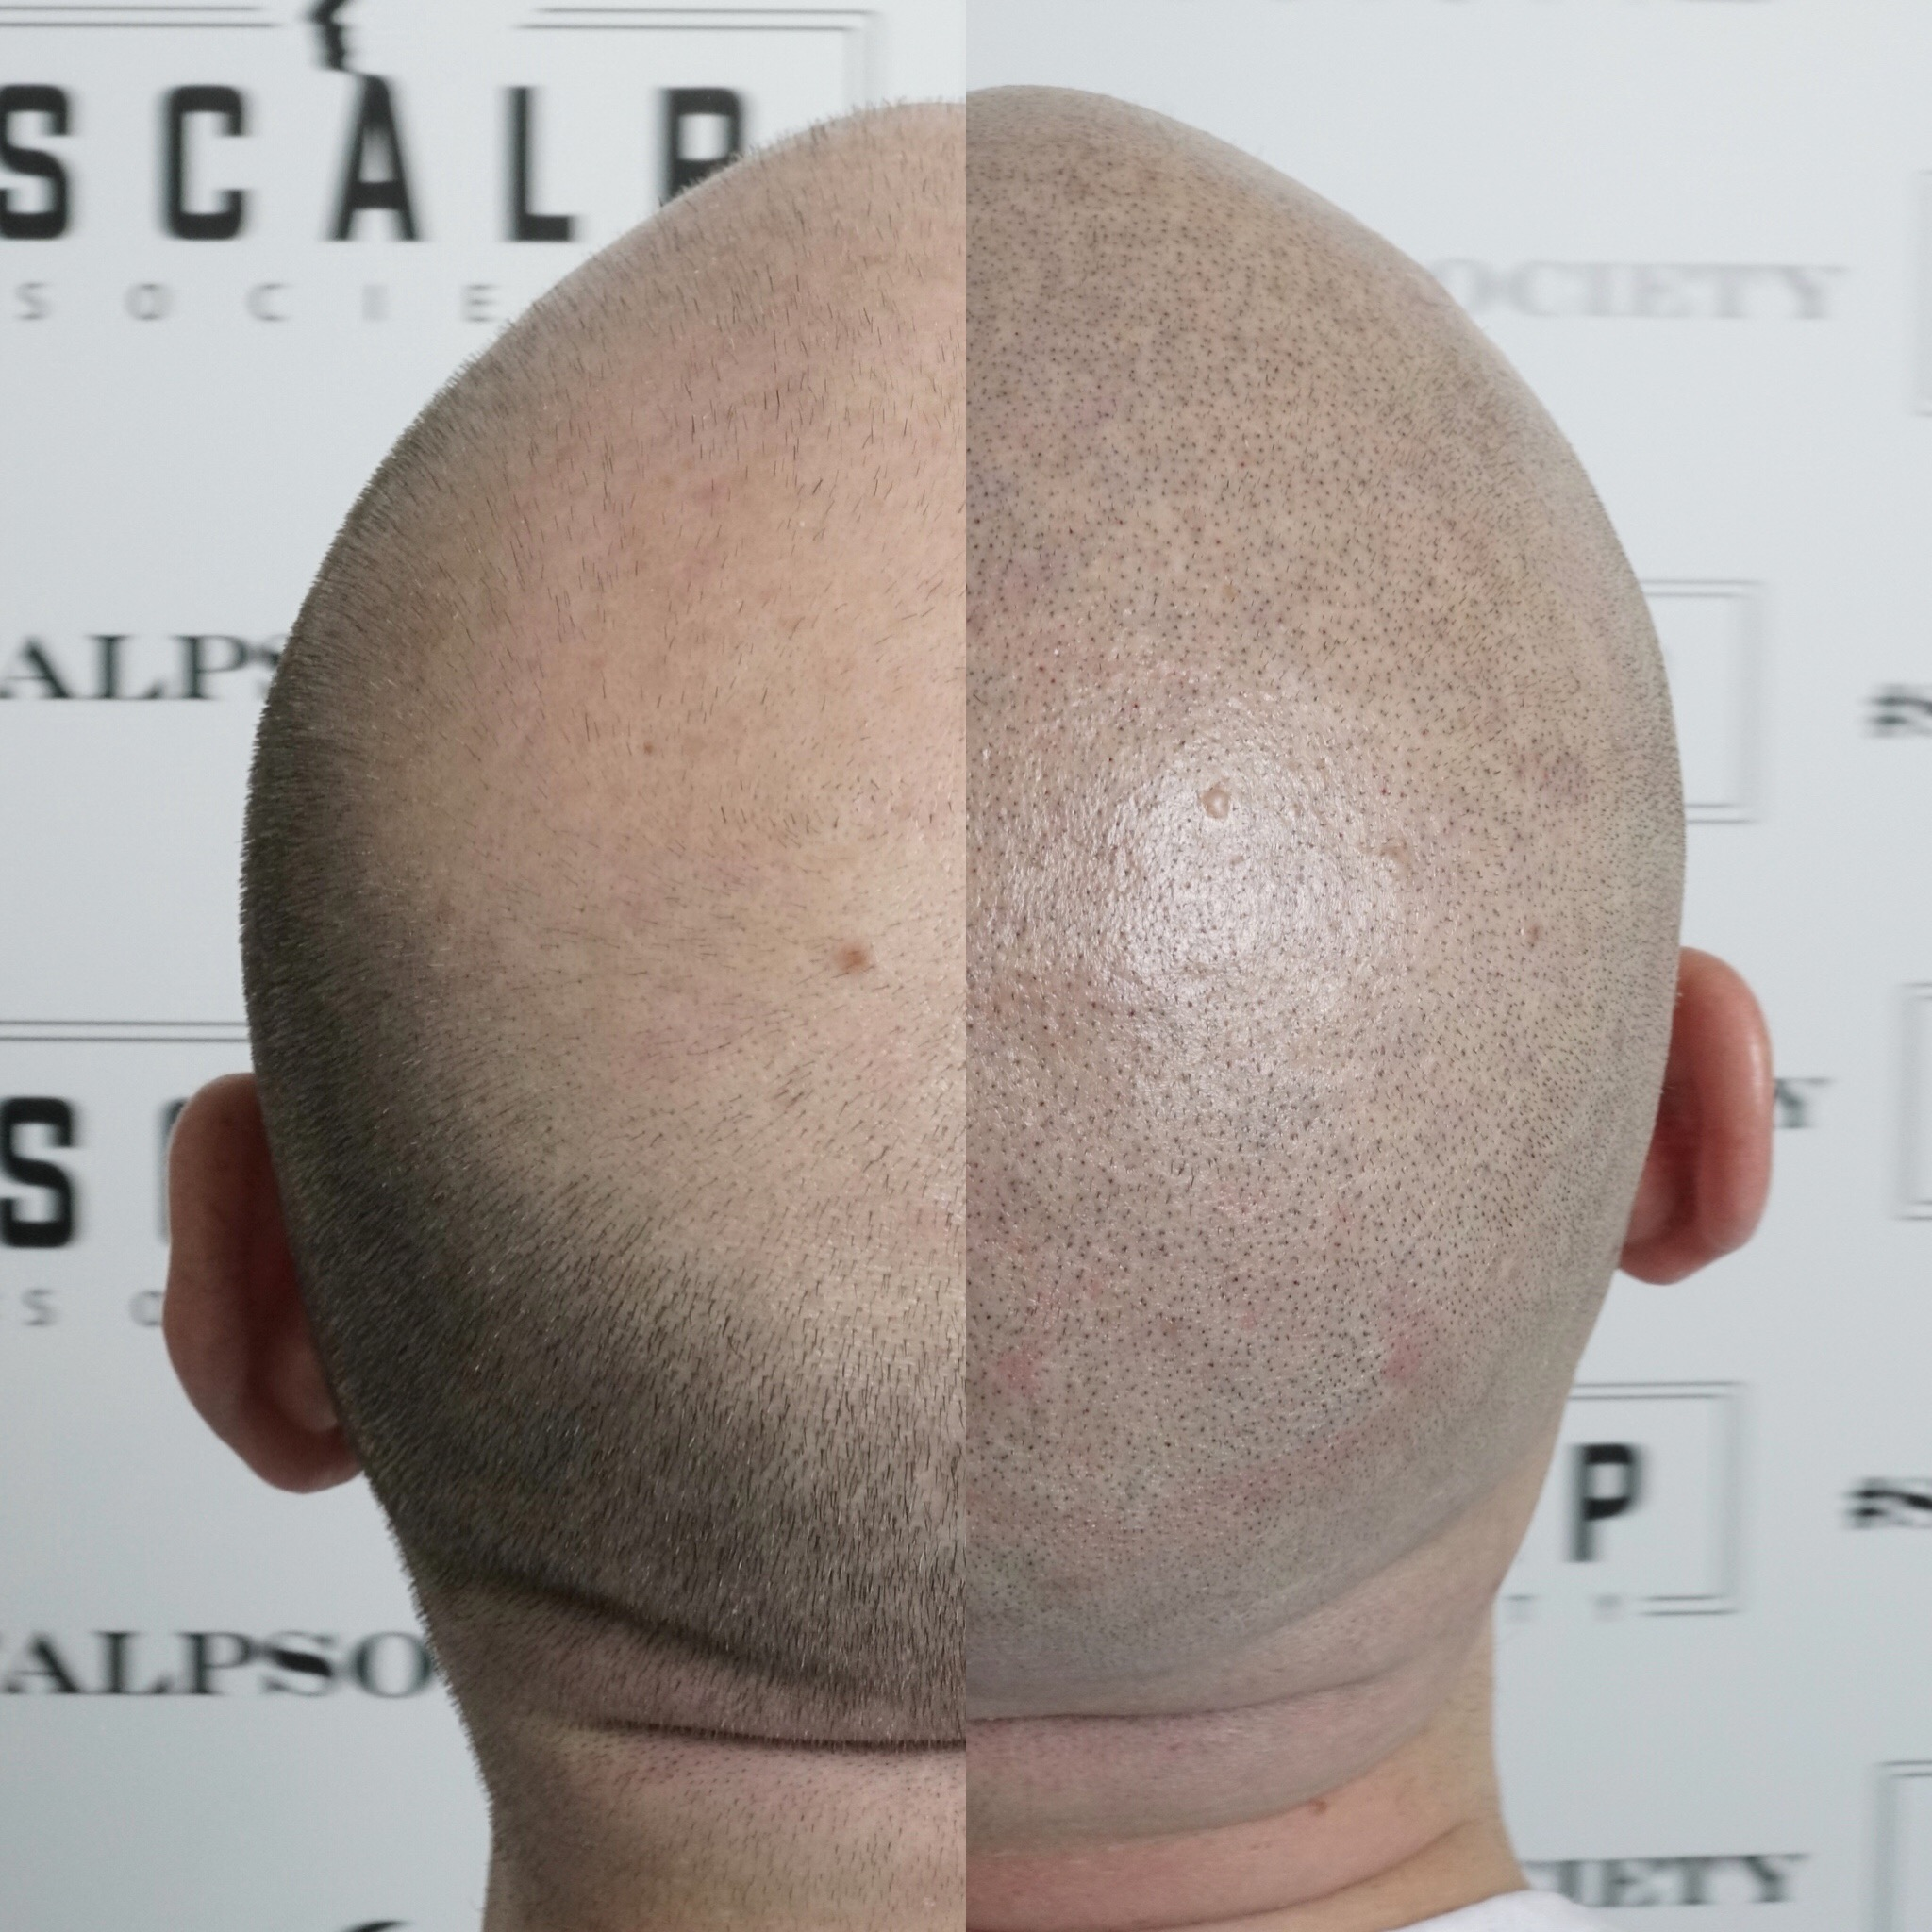 Male 31. Very common in male pattern baldness, clients see a ring on their crown. Micropigmentation replicates hair follicles and can help camouflage the ring with a blend and transition technique.